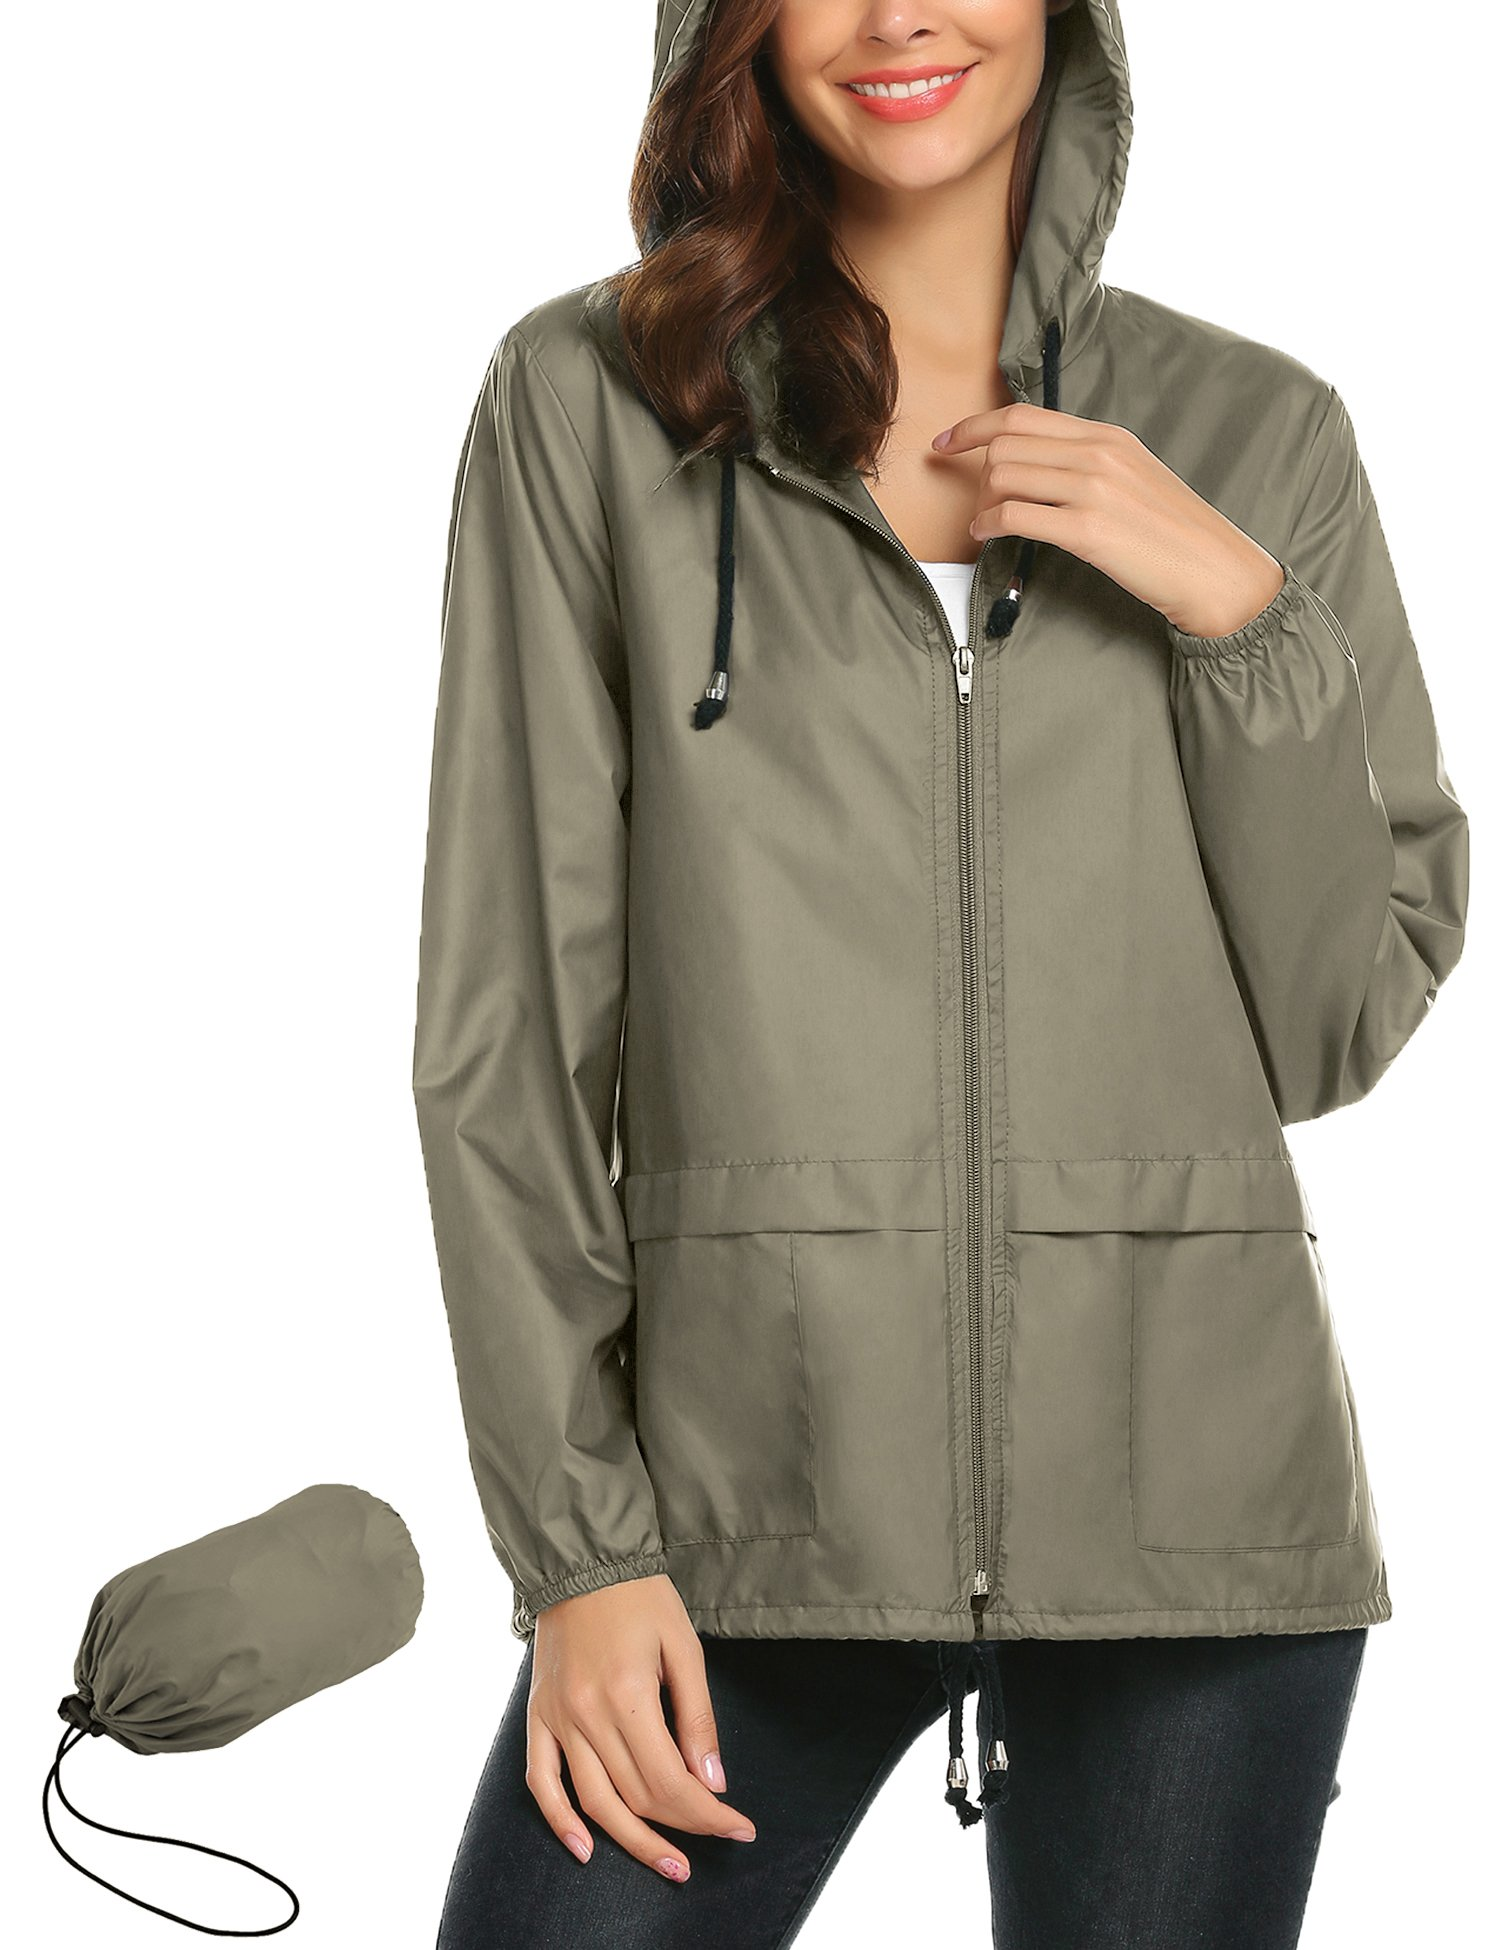 LOMON Women's Lightweight Waterproof Rain Coat Active Outdoor Sportswear Jacket Army Green L